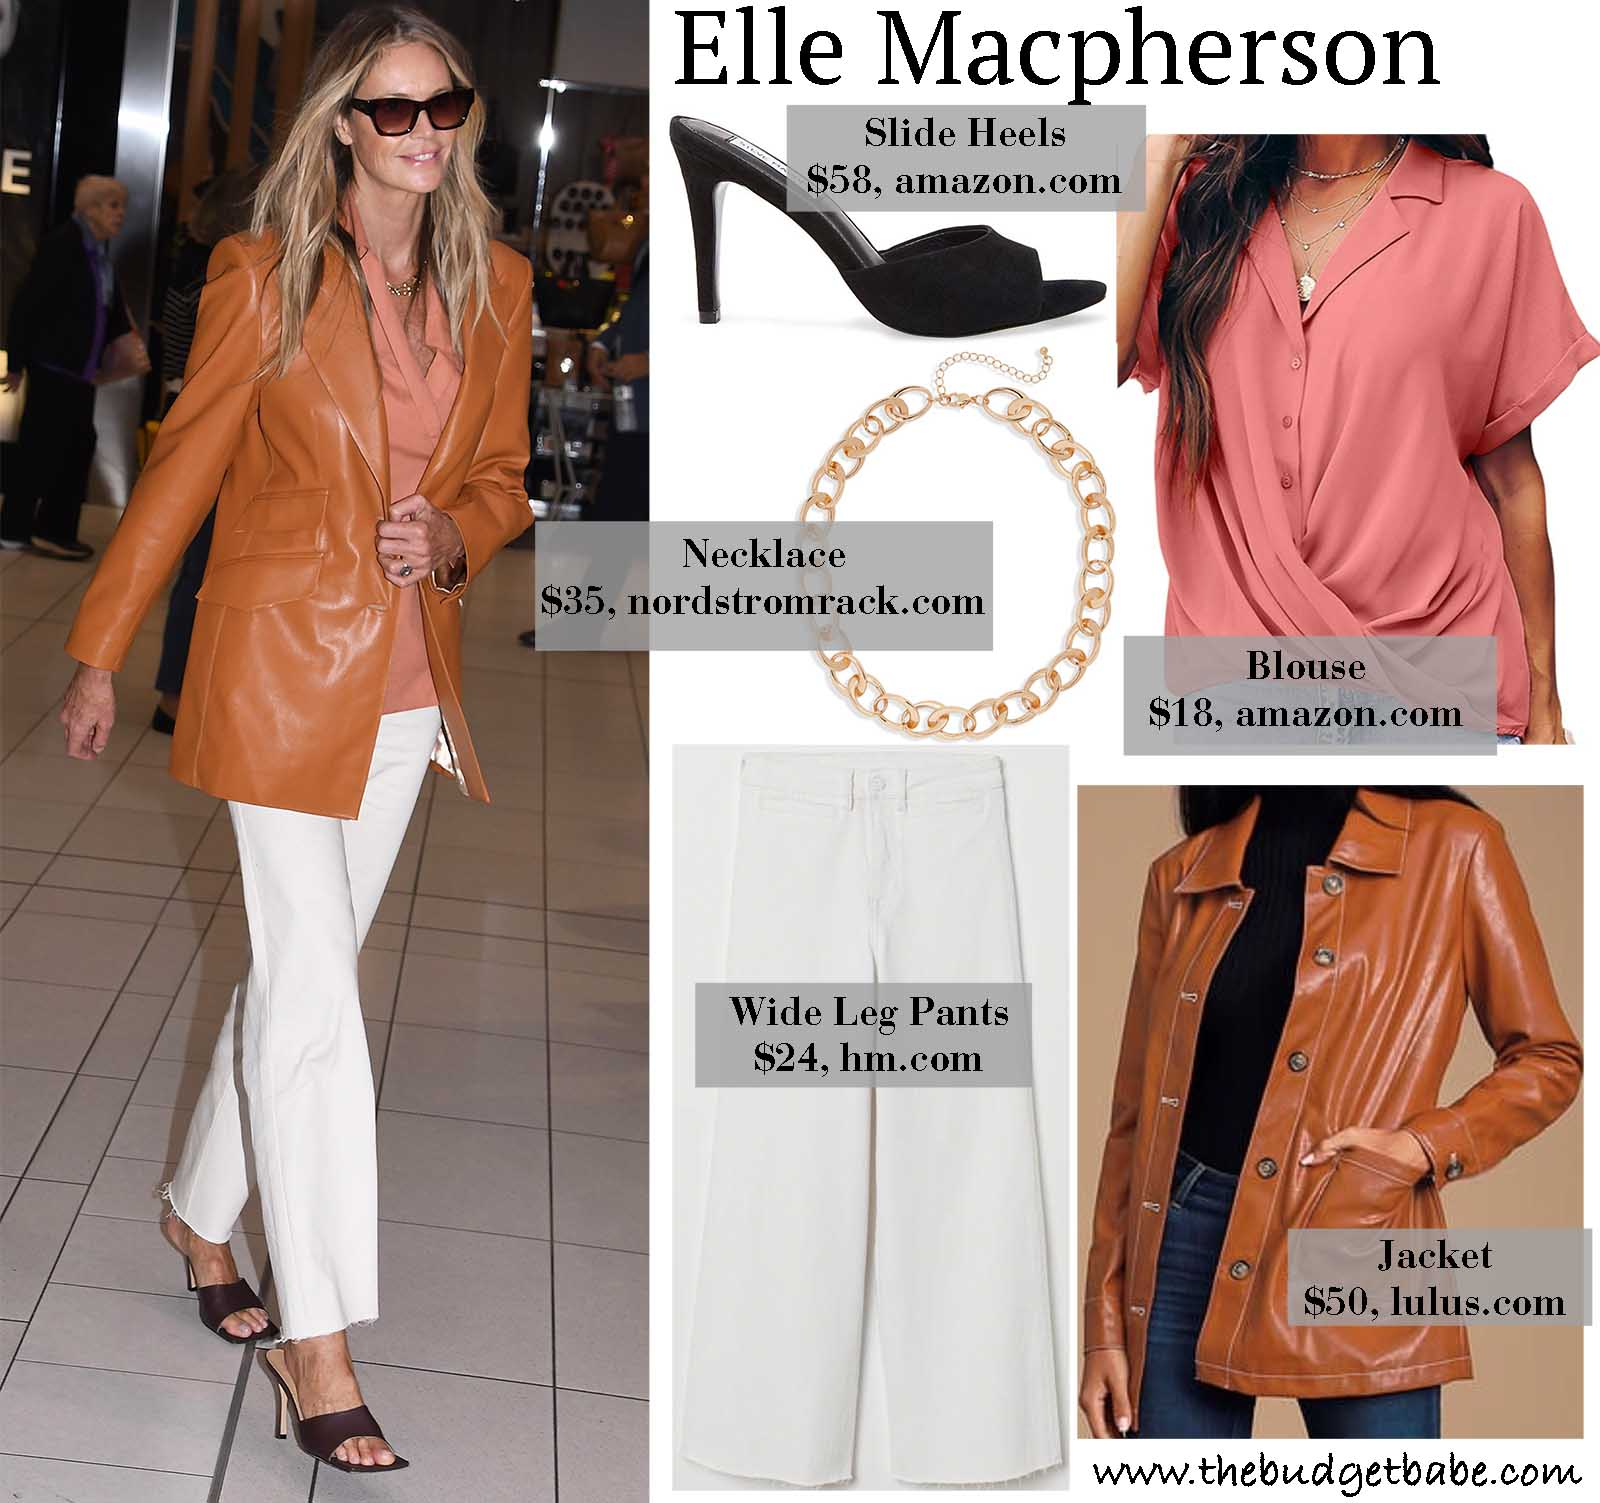 Elle Macpherson is serving serious style in her brown leather jacket and wide leg pants!